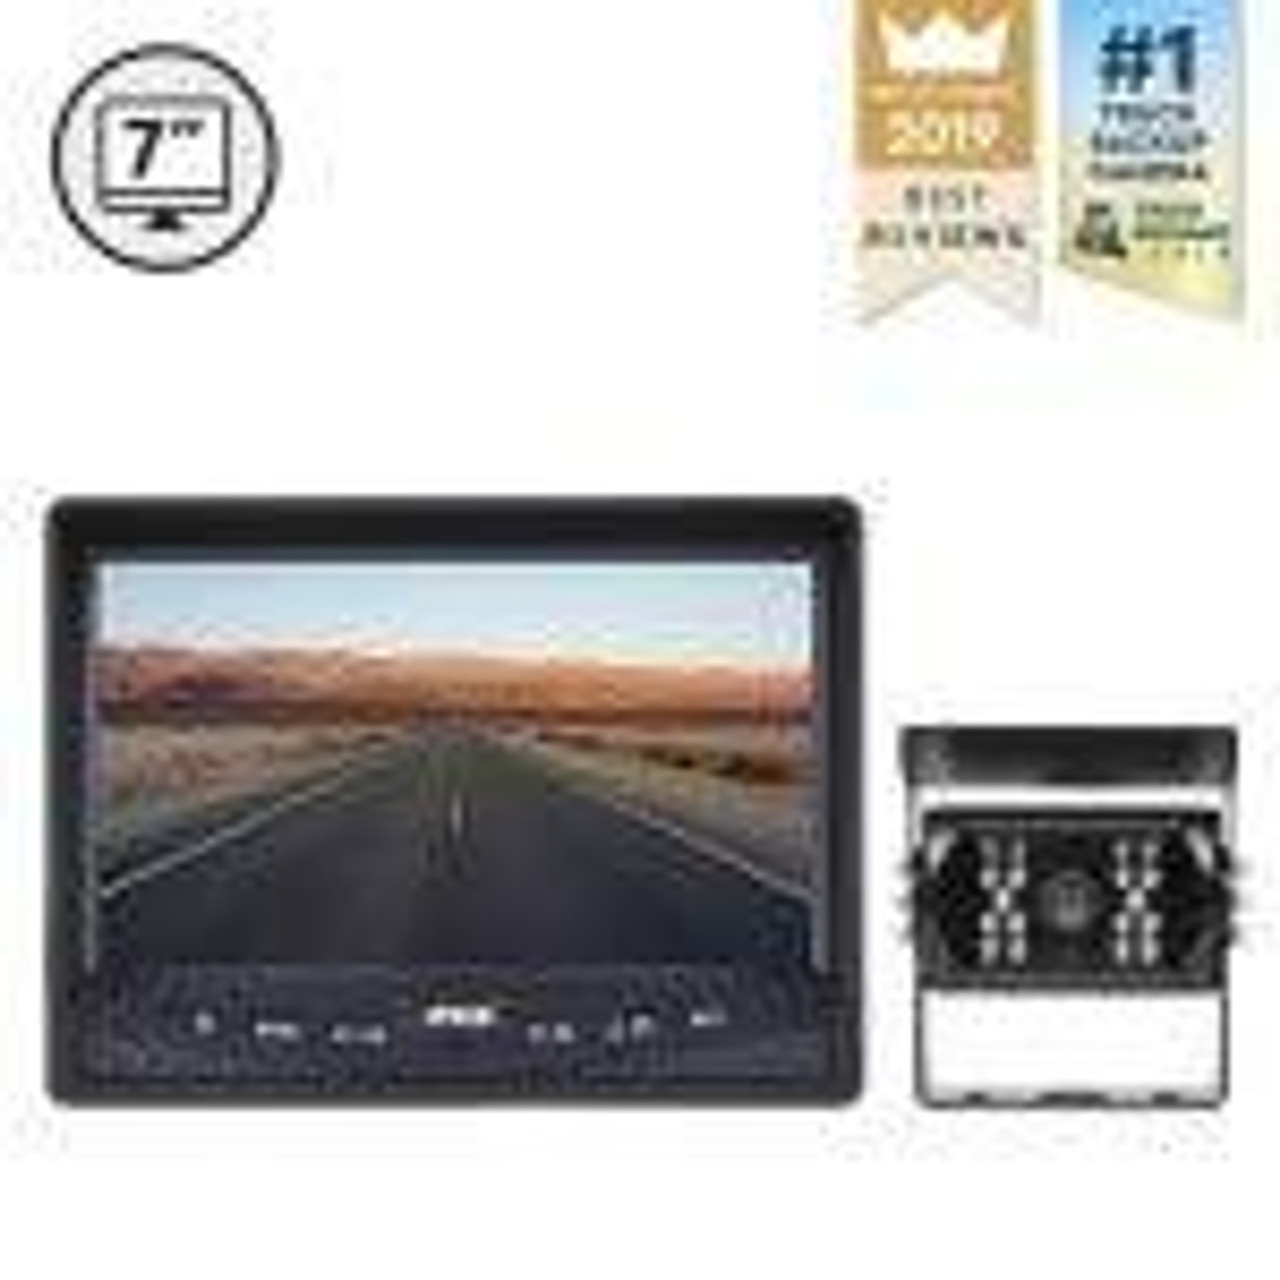 "7"" Display, 1 x Backup Camera, 33' Cable"